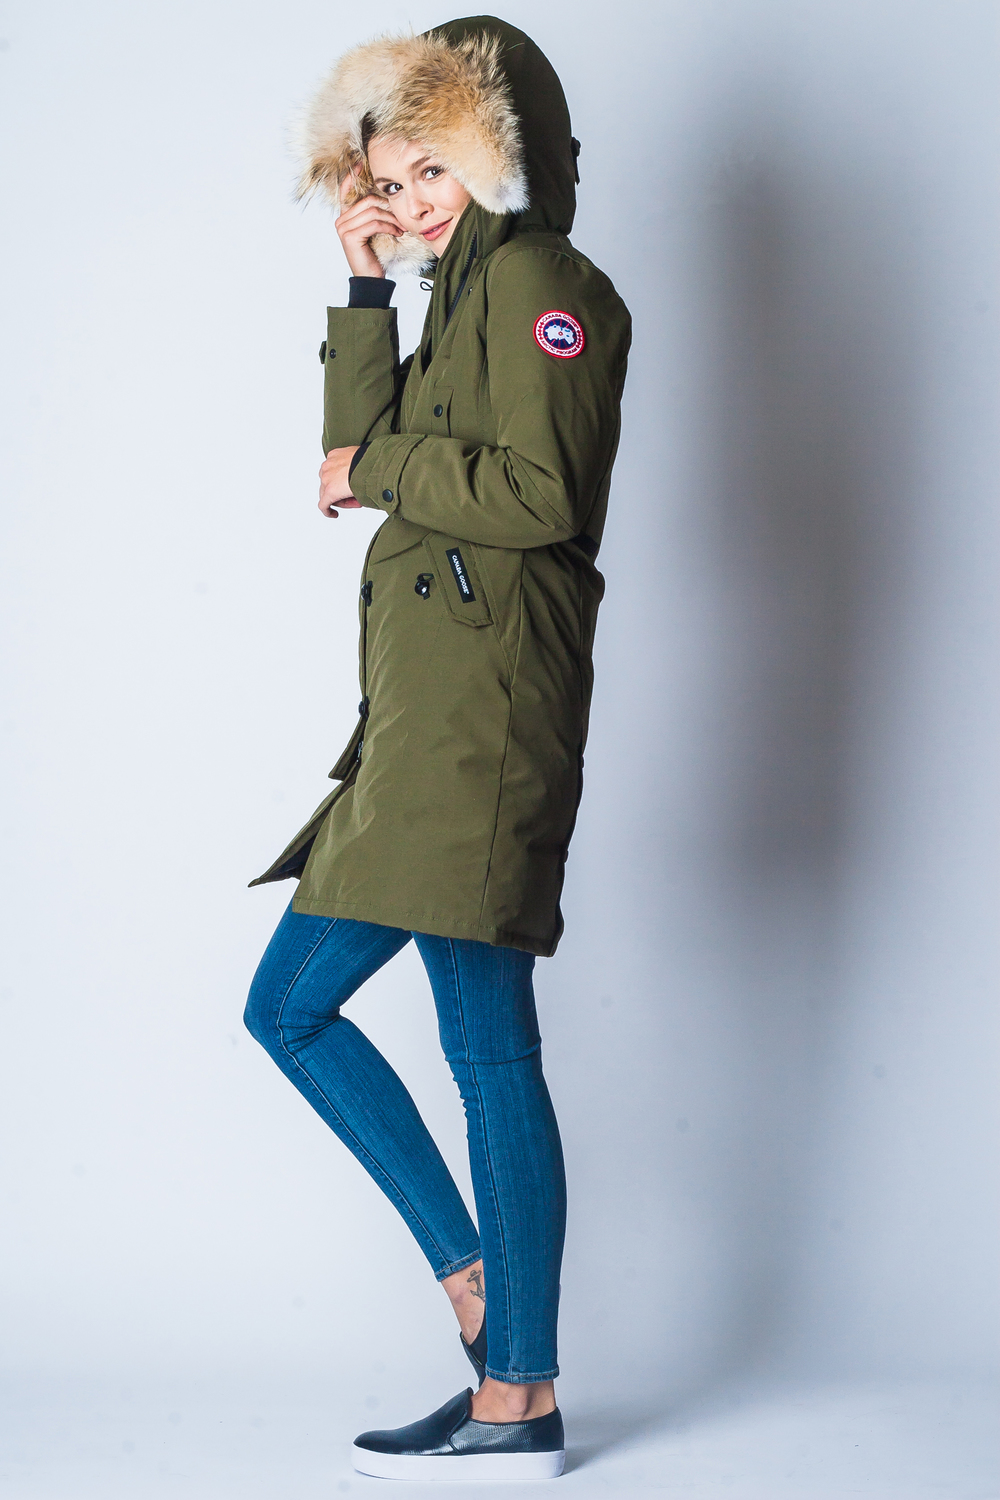 Canada Goose Kensington Parka, 625 Fill, Coyote Fur Ruff $745 (ALSO AVAILABLE IN BLACK)